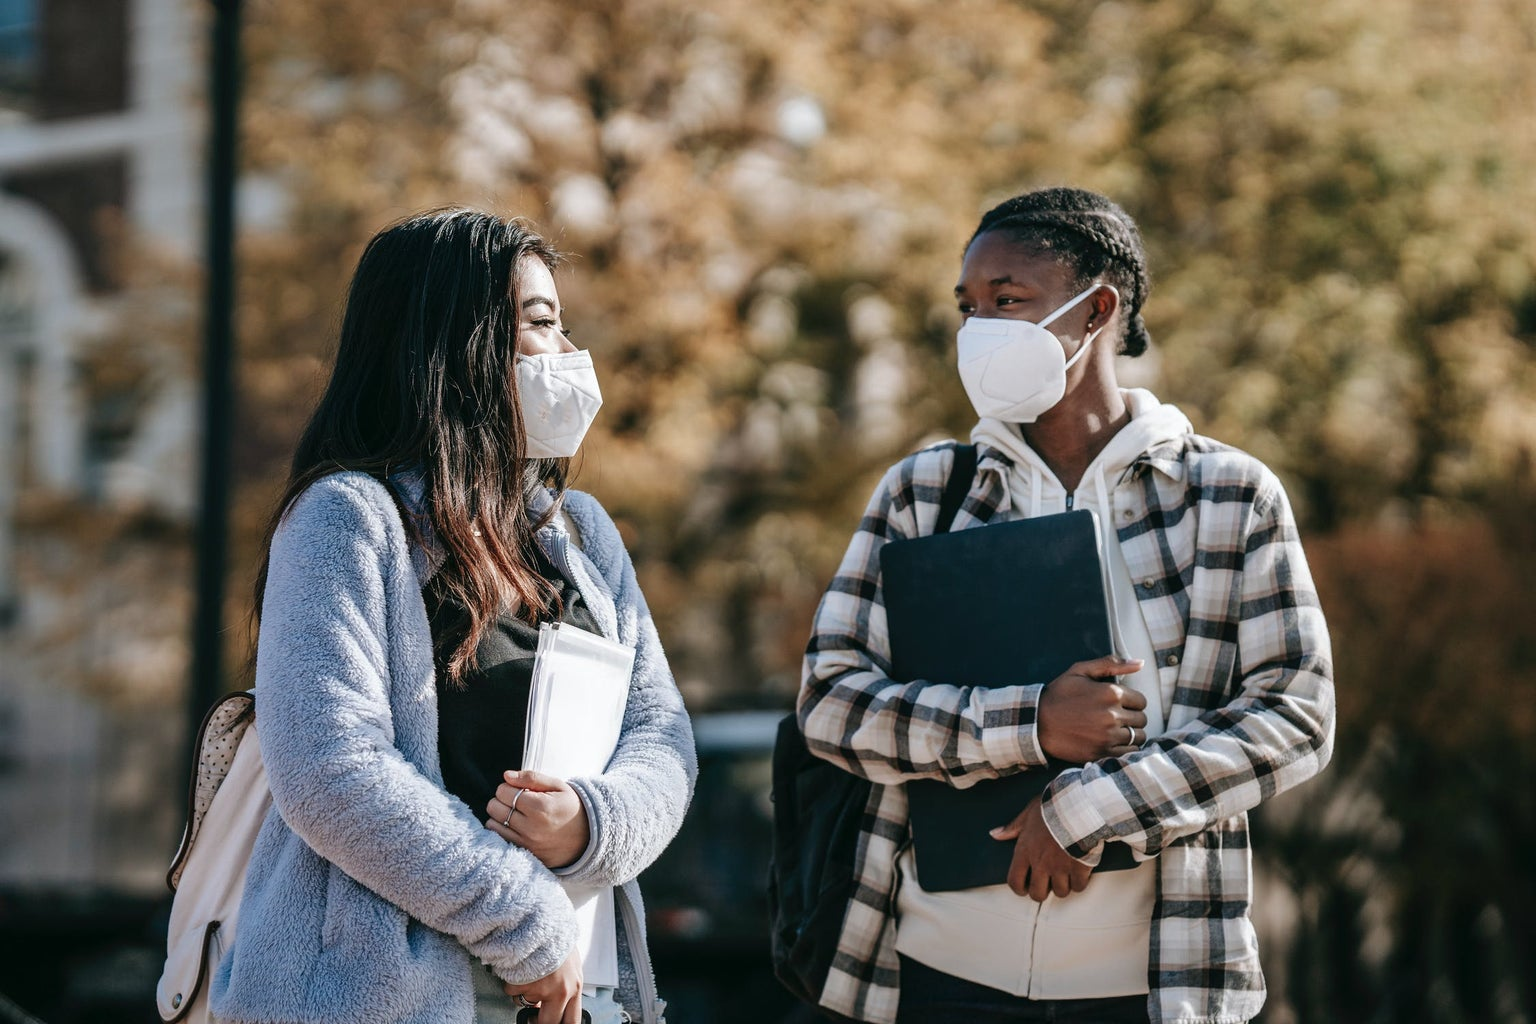 College students with masks walking across campus together.